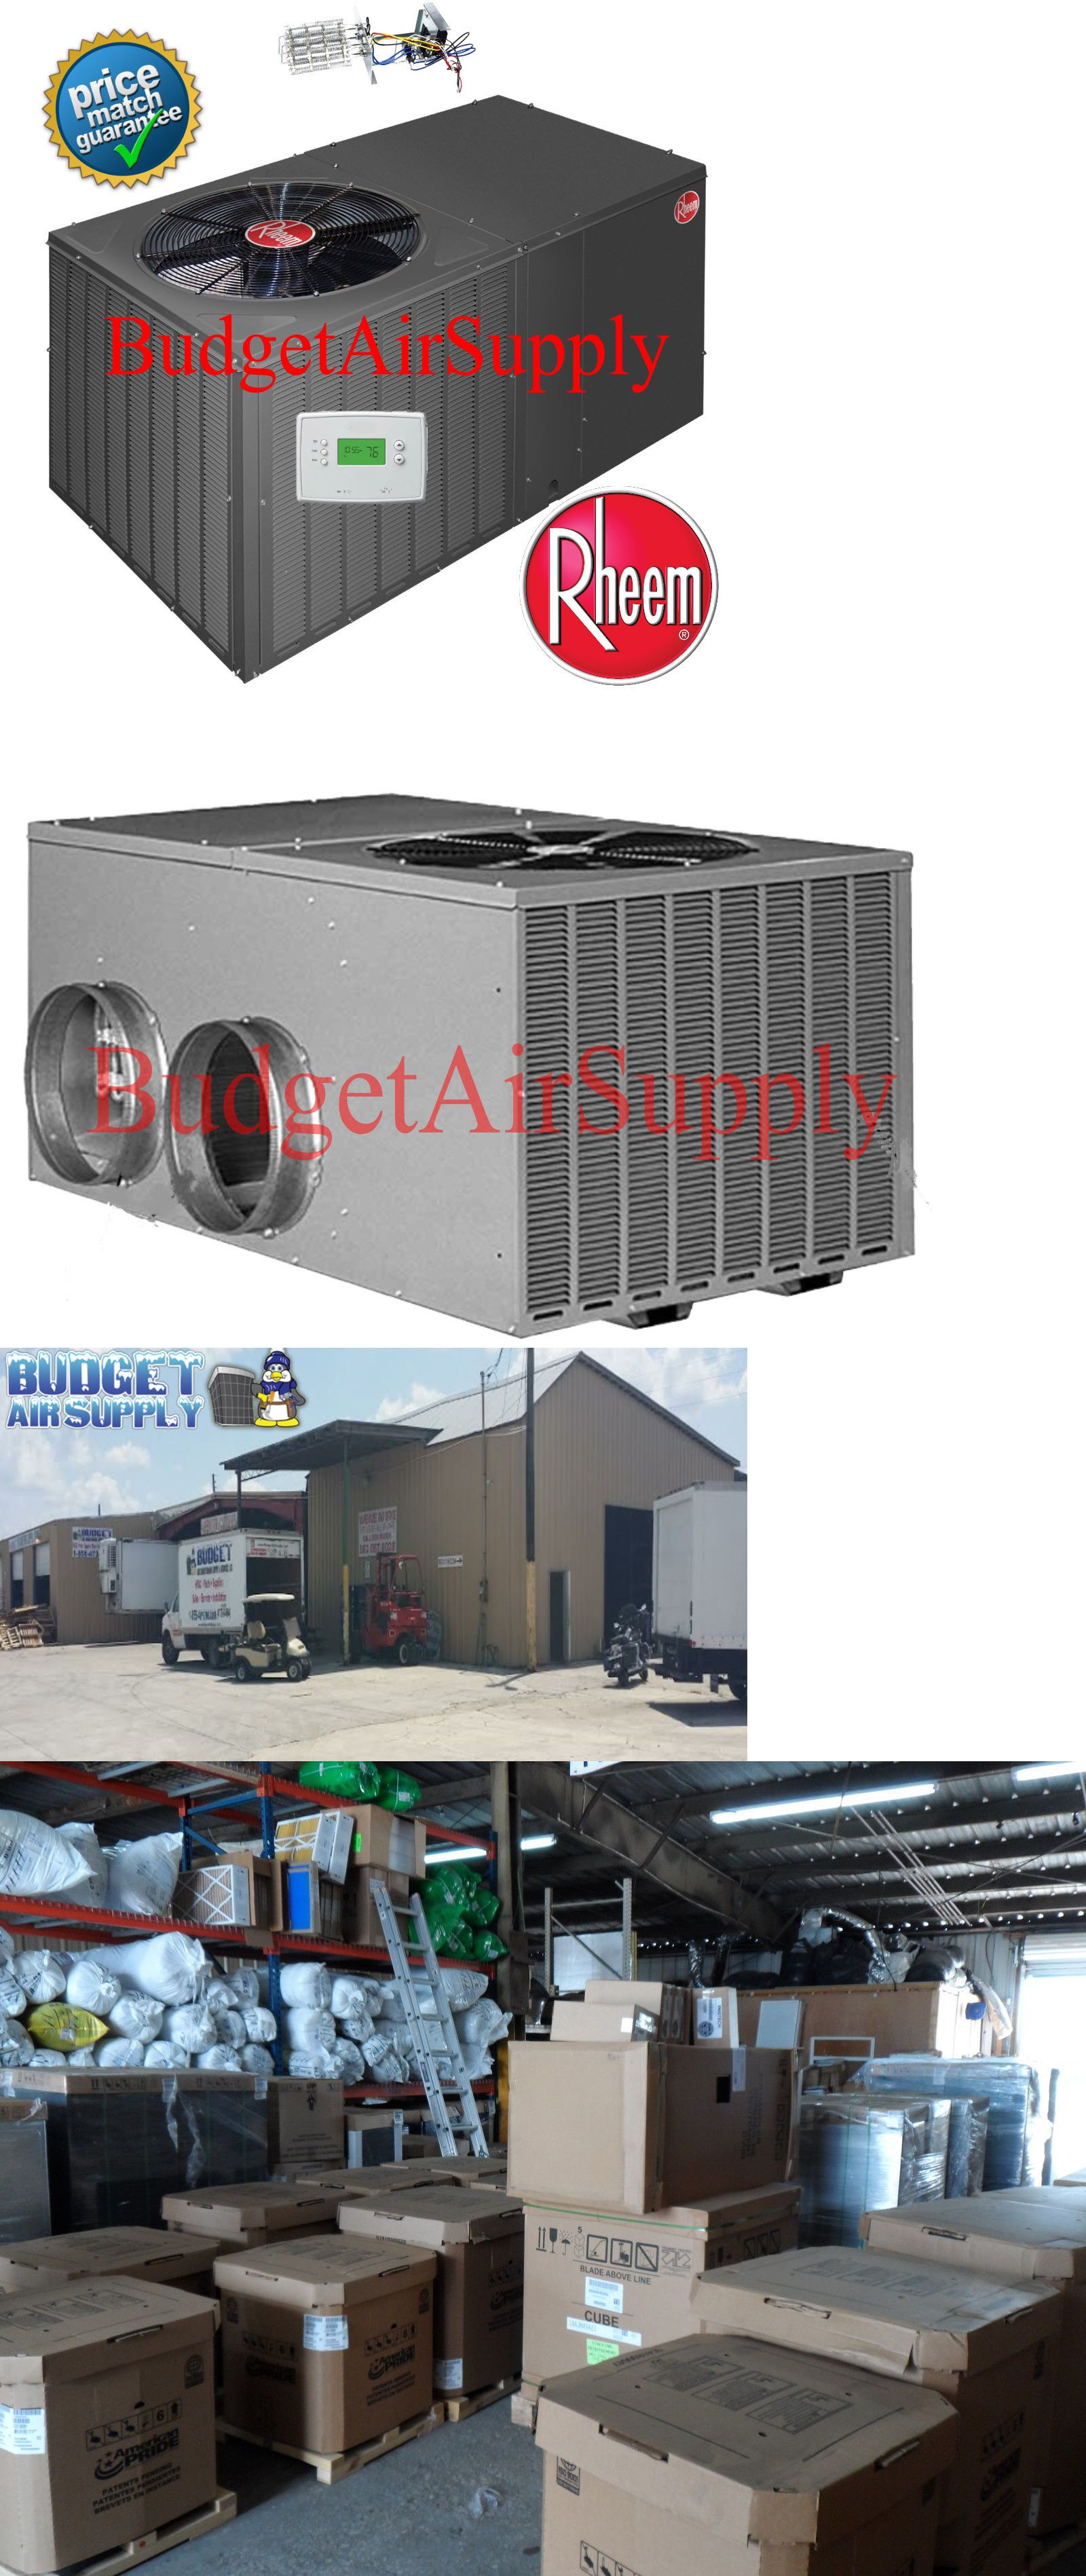 Central Air Conditioners 185108 Rheem 2 5 Ton 14 Seer R410 A C Package Unit Rspma030jk000 Tstat And Heat Strip Buy I Central Air Conditioners The Unit Heat